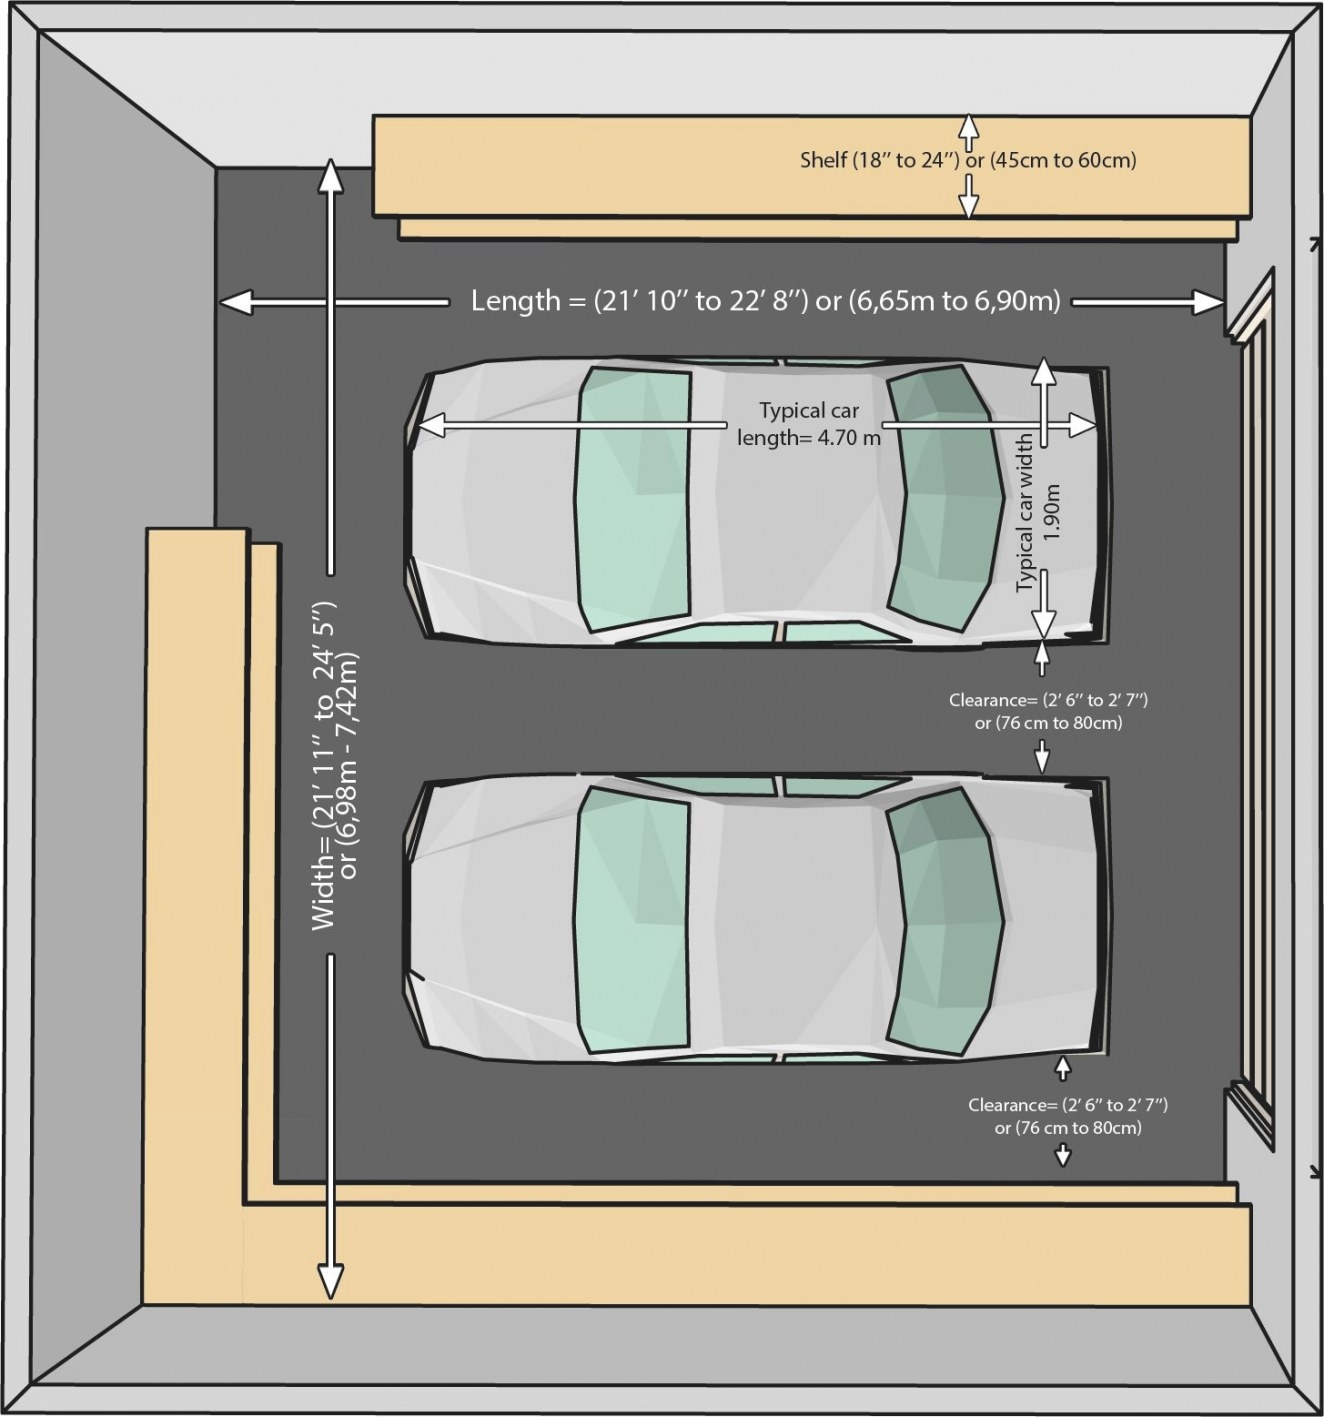 Garage For Two Cars, Garage Measurements For Two Cars with regard to Size Of 2 Car Garage